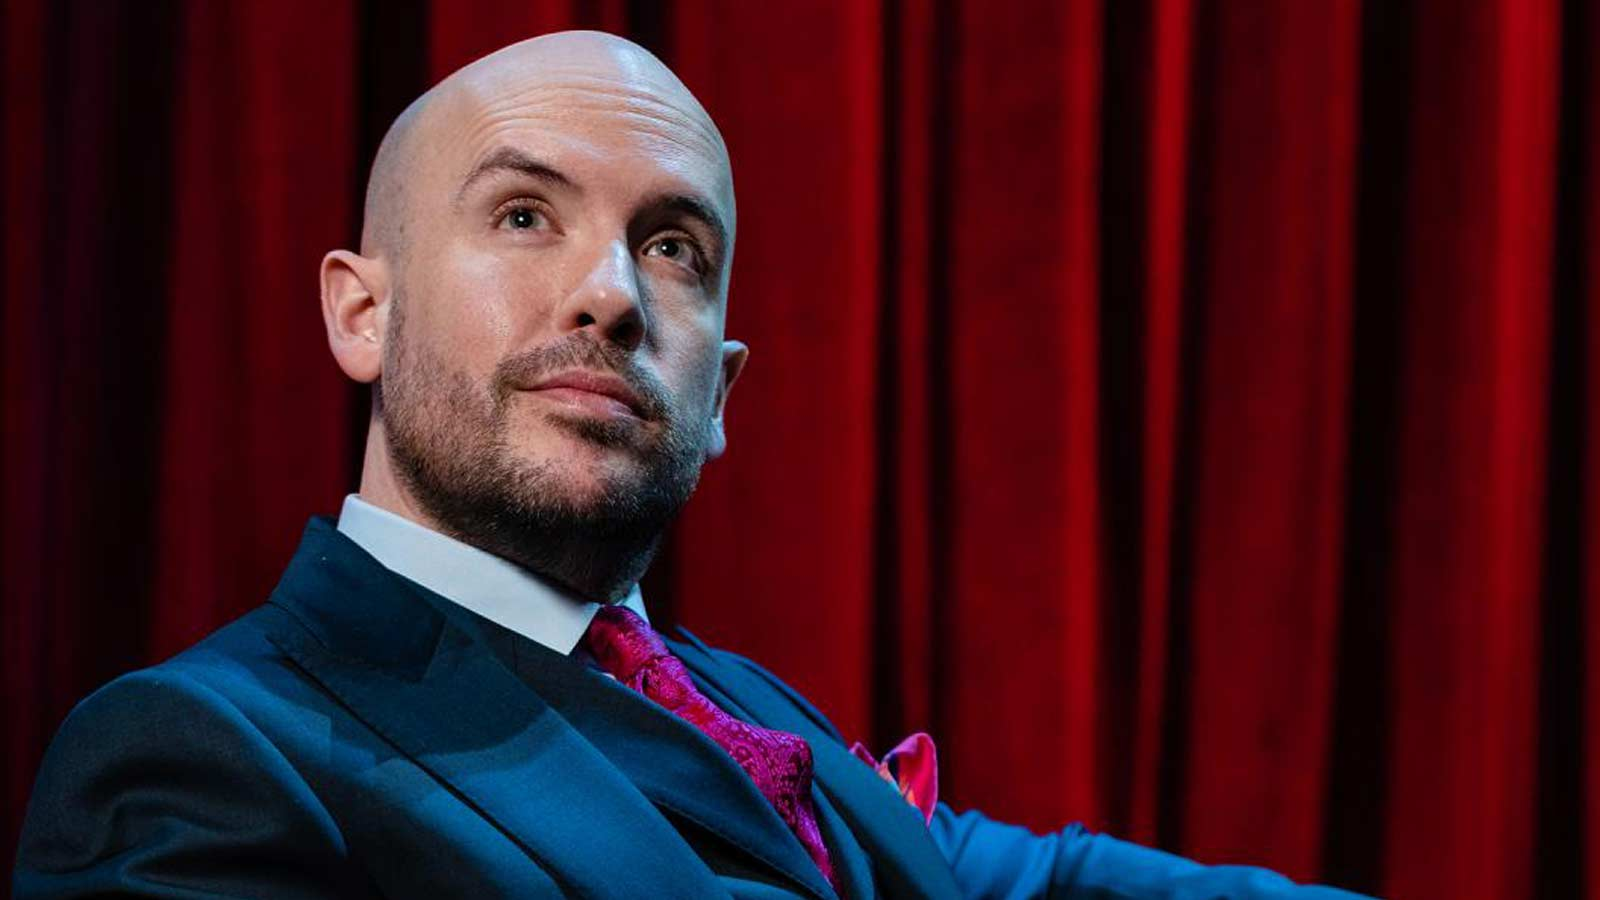 Channel 4 has commissioned a new quiz series Quizness with comedian Tom Allen